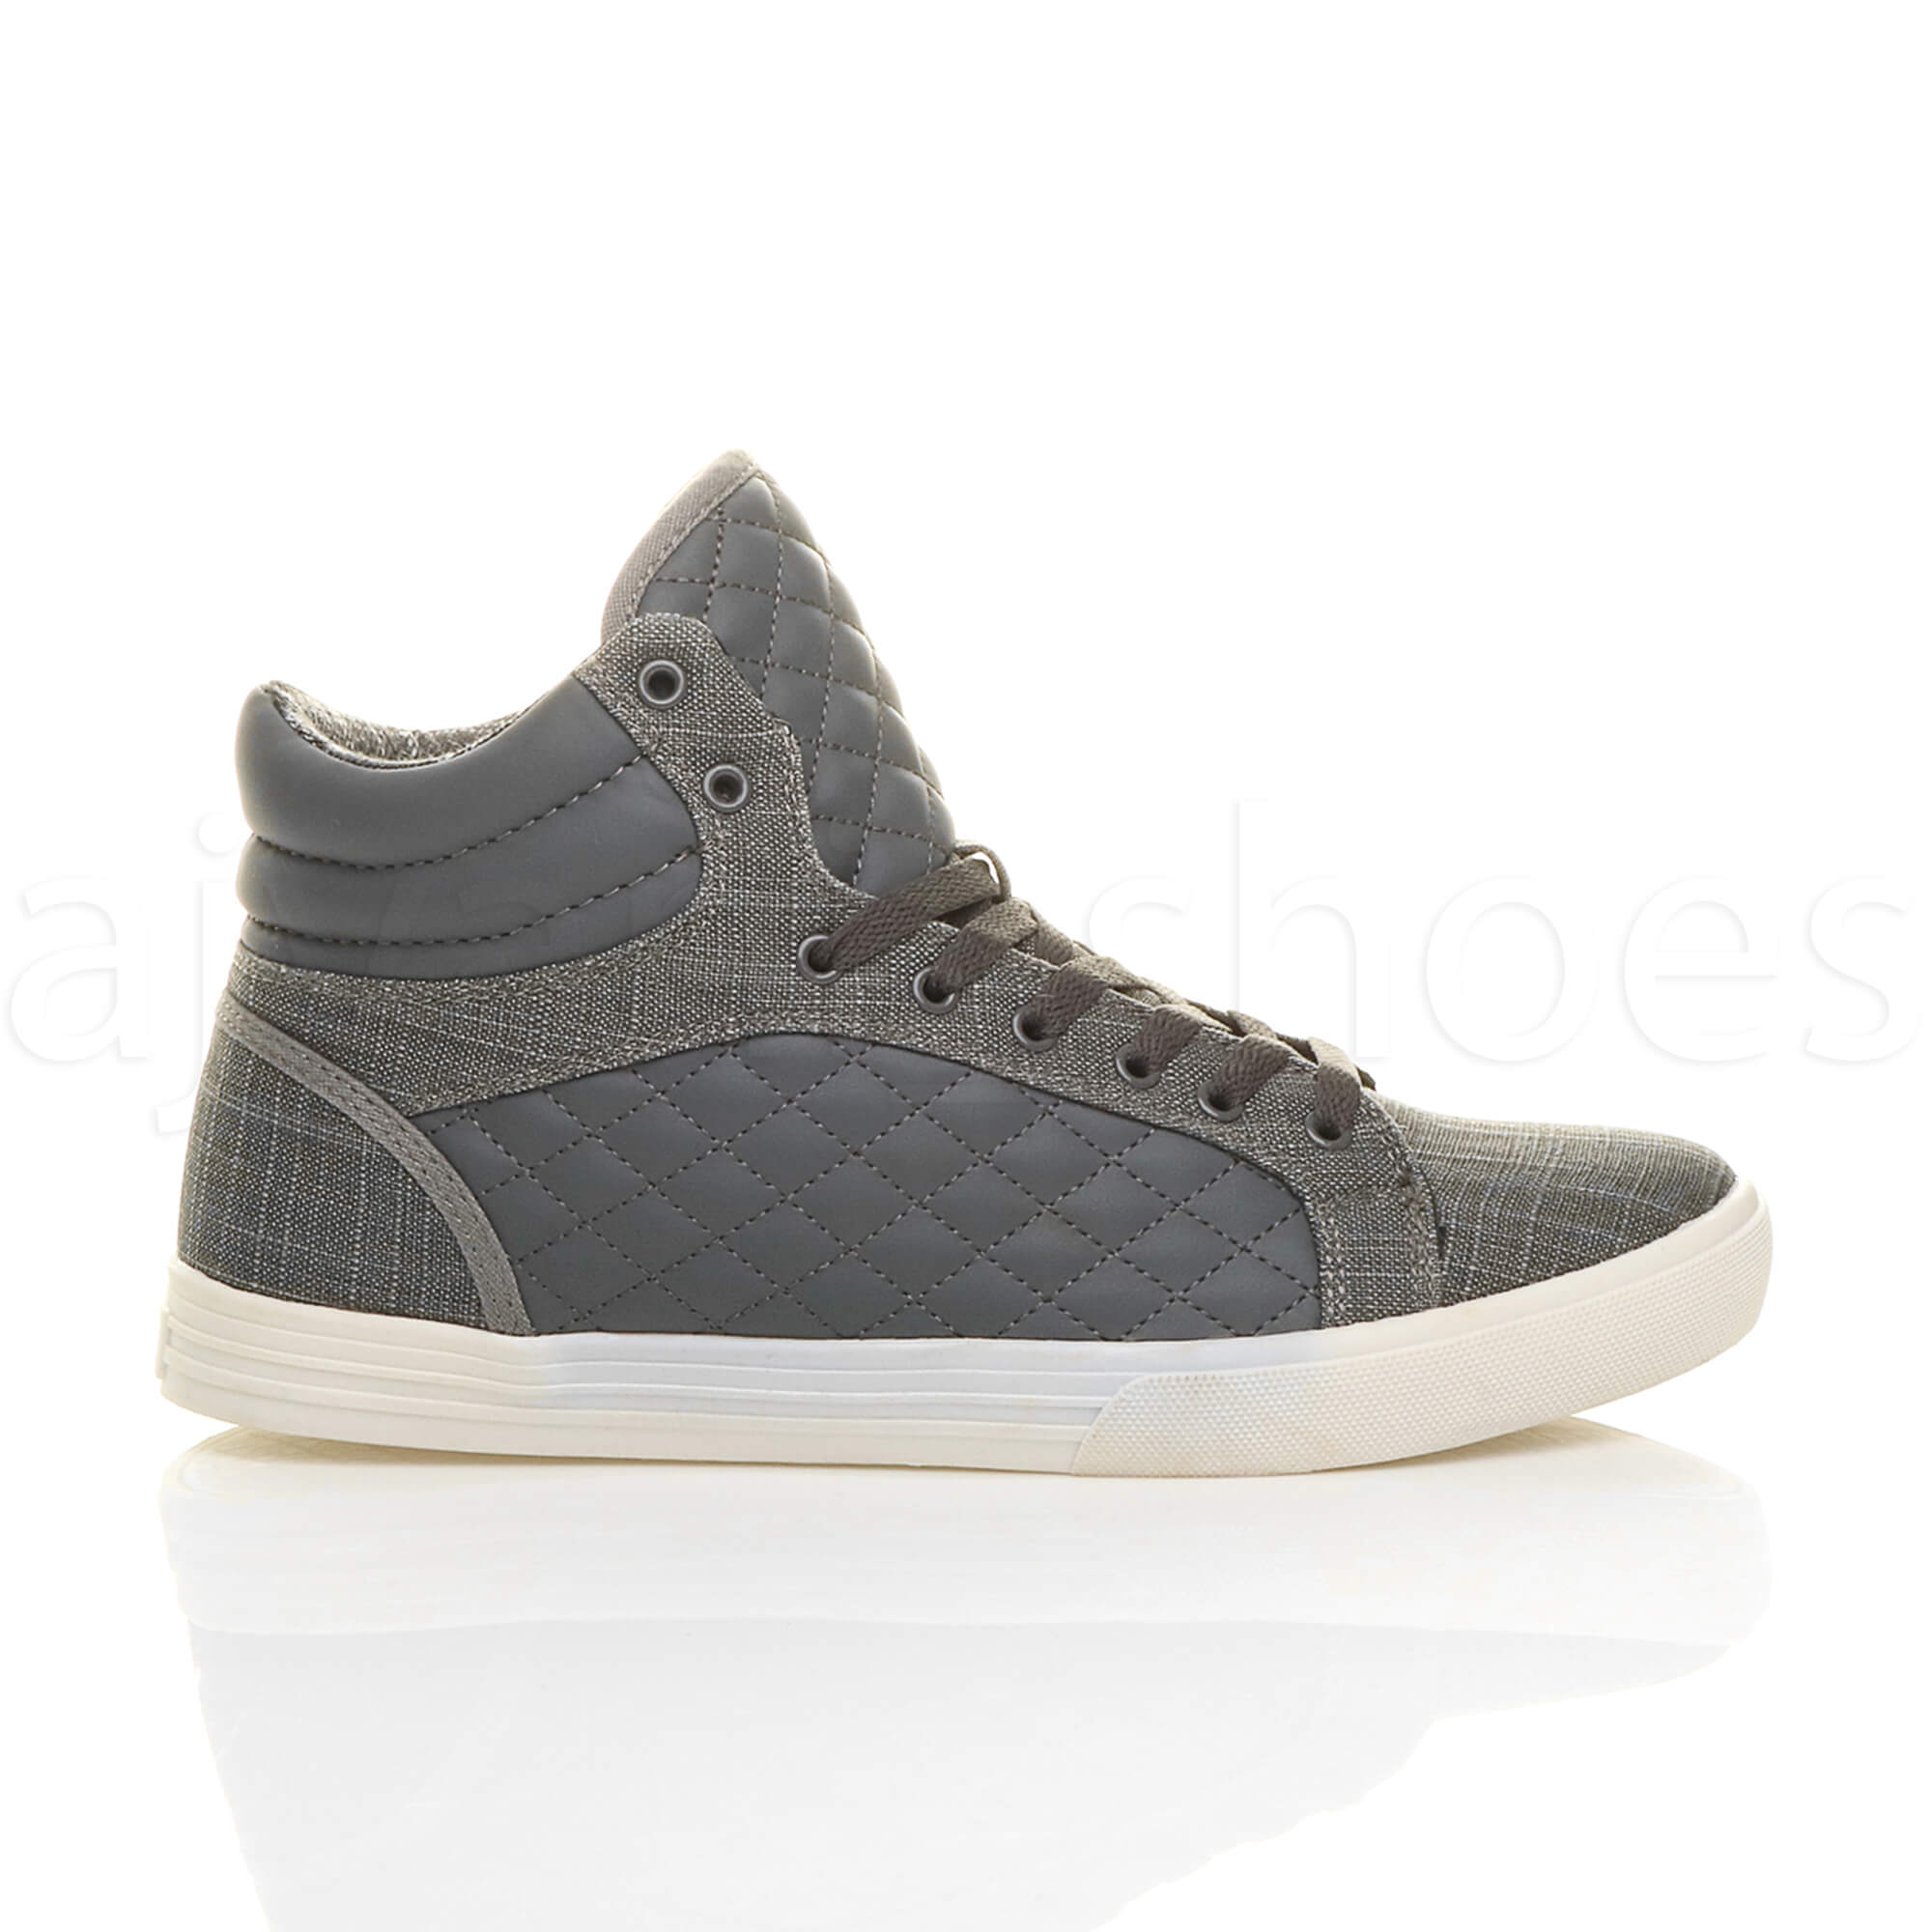 MENS-QUILTED-LACE-UP-FLAT-CASUAL-HI-HIGH-TOP-TRAINERS-SHOES-ANKLE-BOOTS-SIZE thumbnail 10